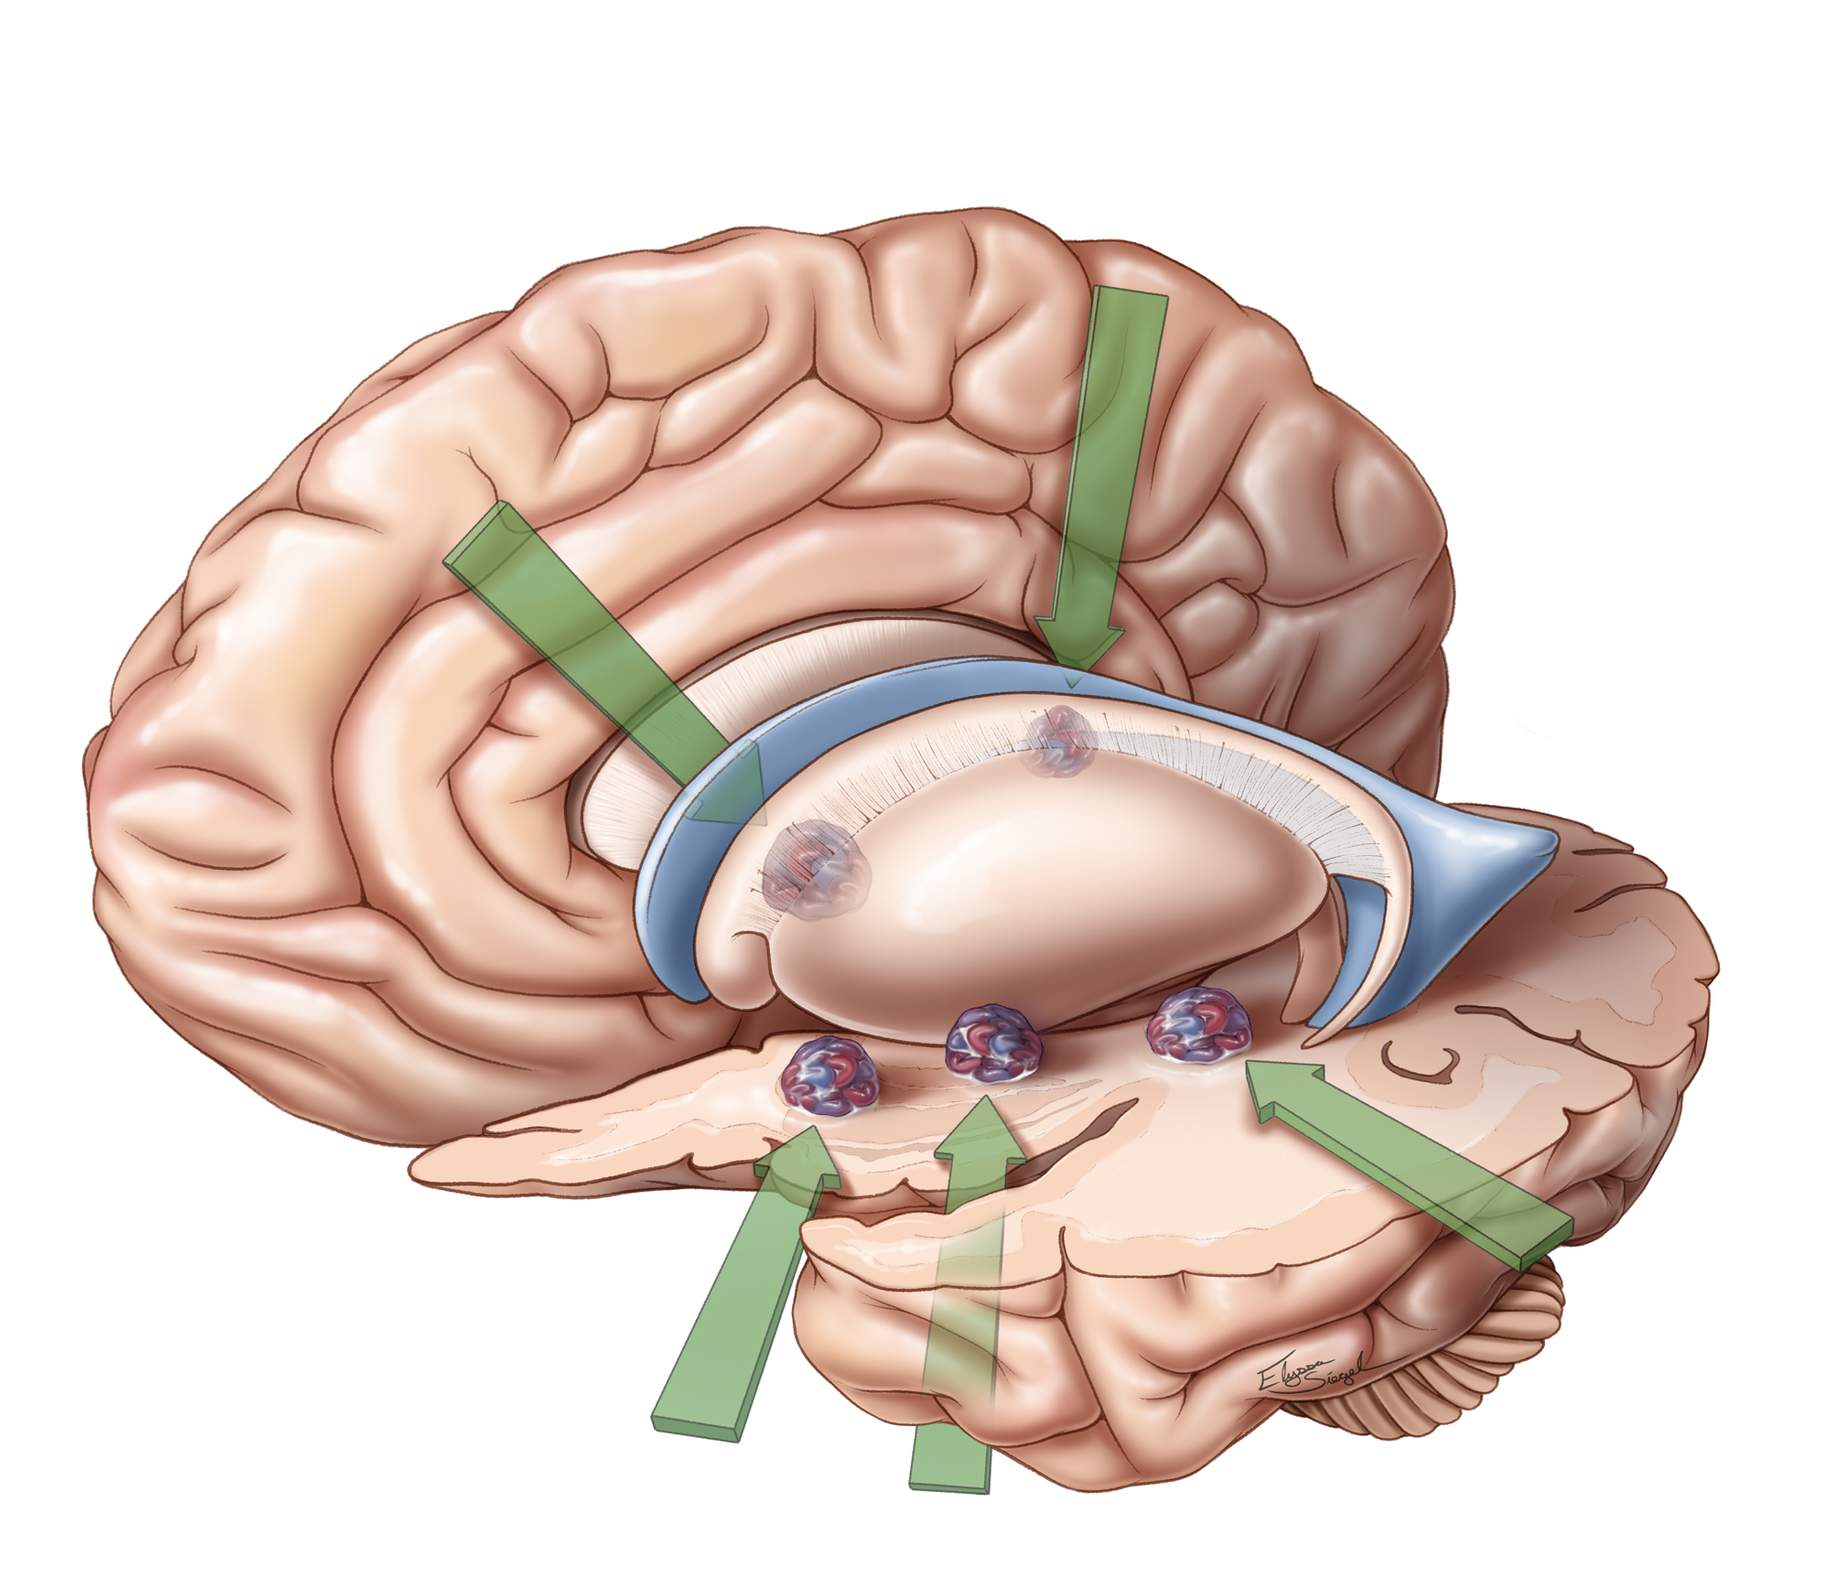 Figure 3: The CMs located in the basal ganglia are readily approached via transcallosal (both ipsi- and contralateral interhemispheric), subfrontal supracarotid, transinsular and transparietal cortical routes.